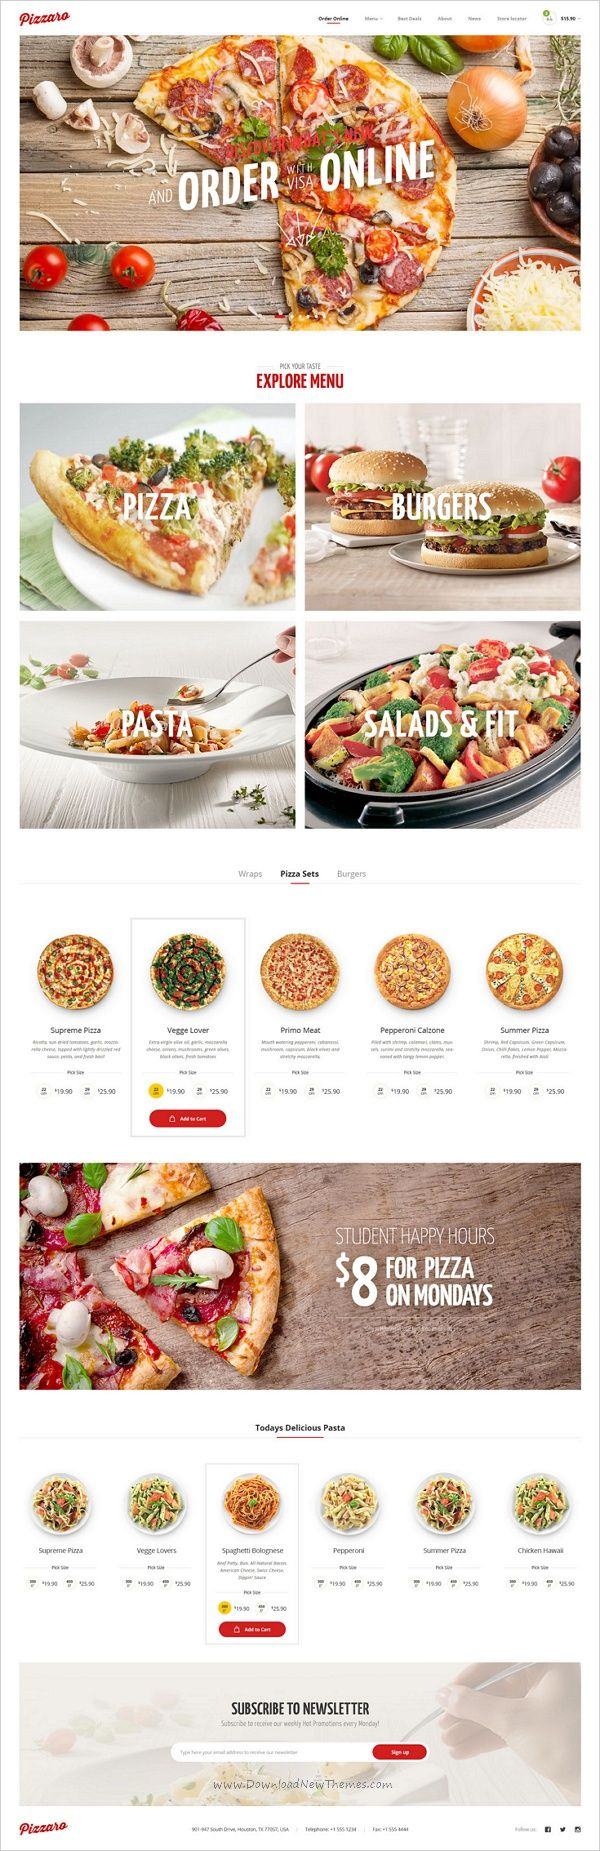 Pizzaro is modern and elegant design responsive 7in1 #WordPress theme for #pizza #cafe fast food and restaurant websites download now➩ https://themeforest.net/item/pizzaro-food-online-ordering-woocommerce-theme/19209143?ref=Datasata